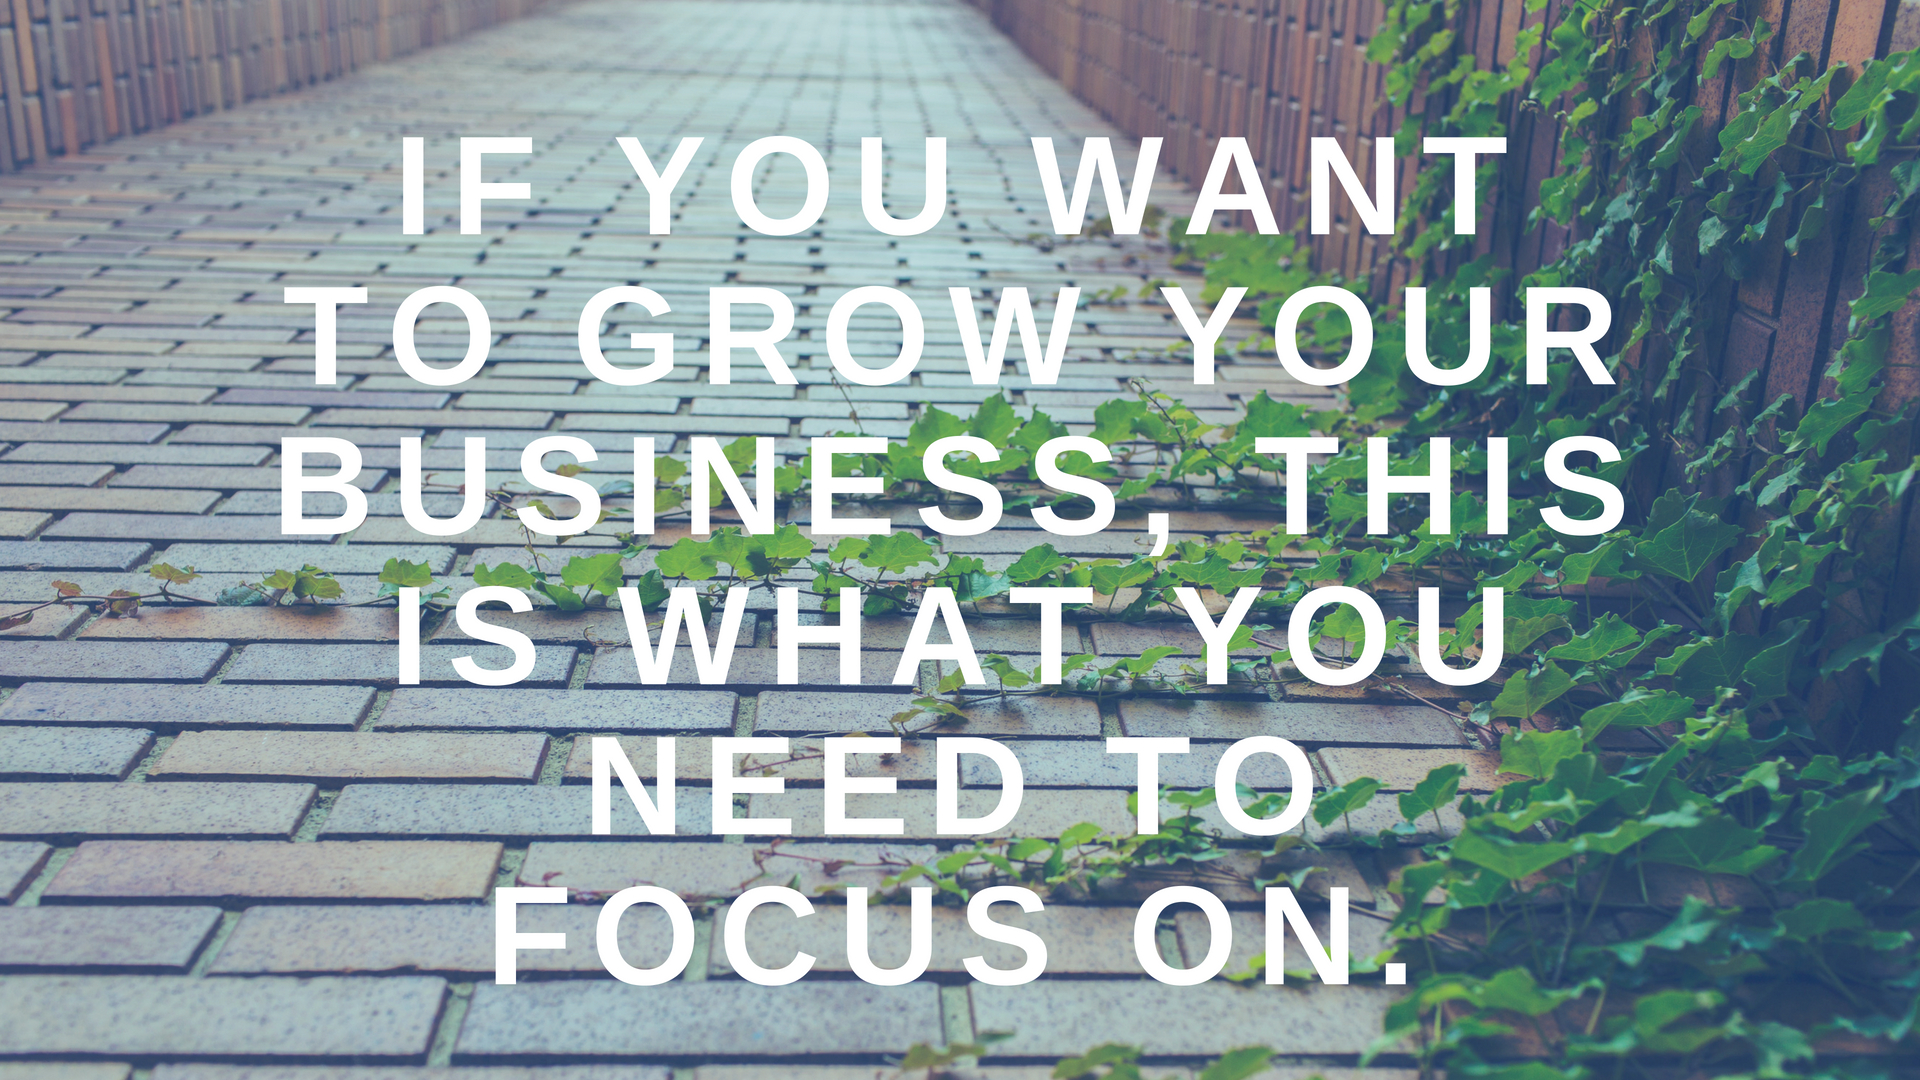 If You Want to Grow Your Business, This is What You Need to Focus on.